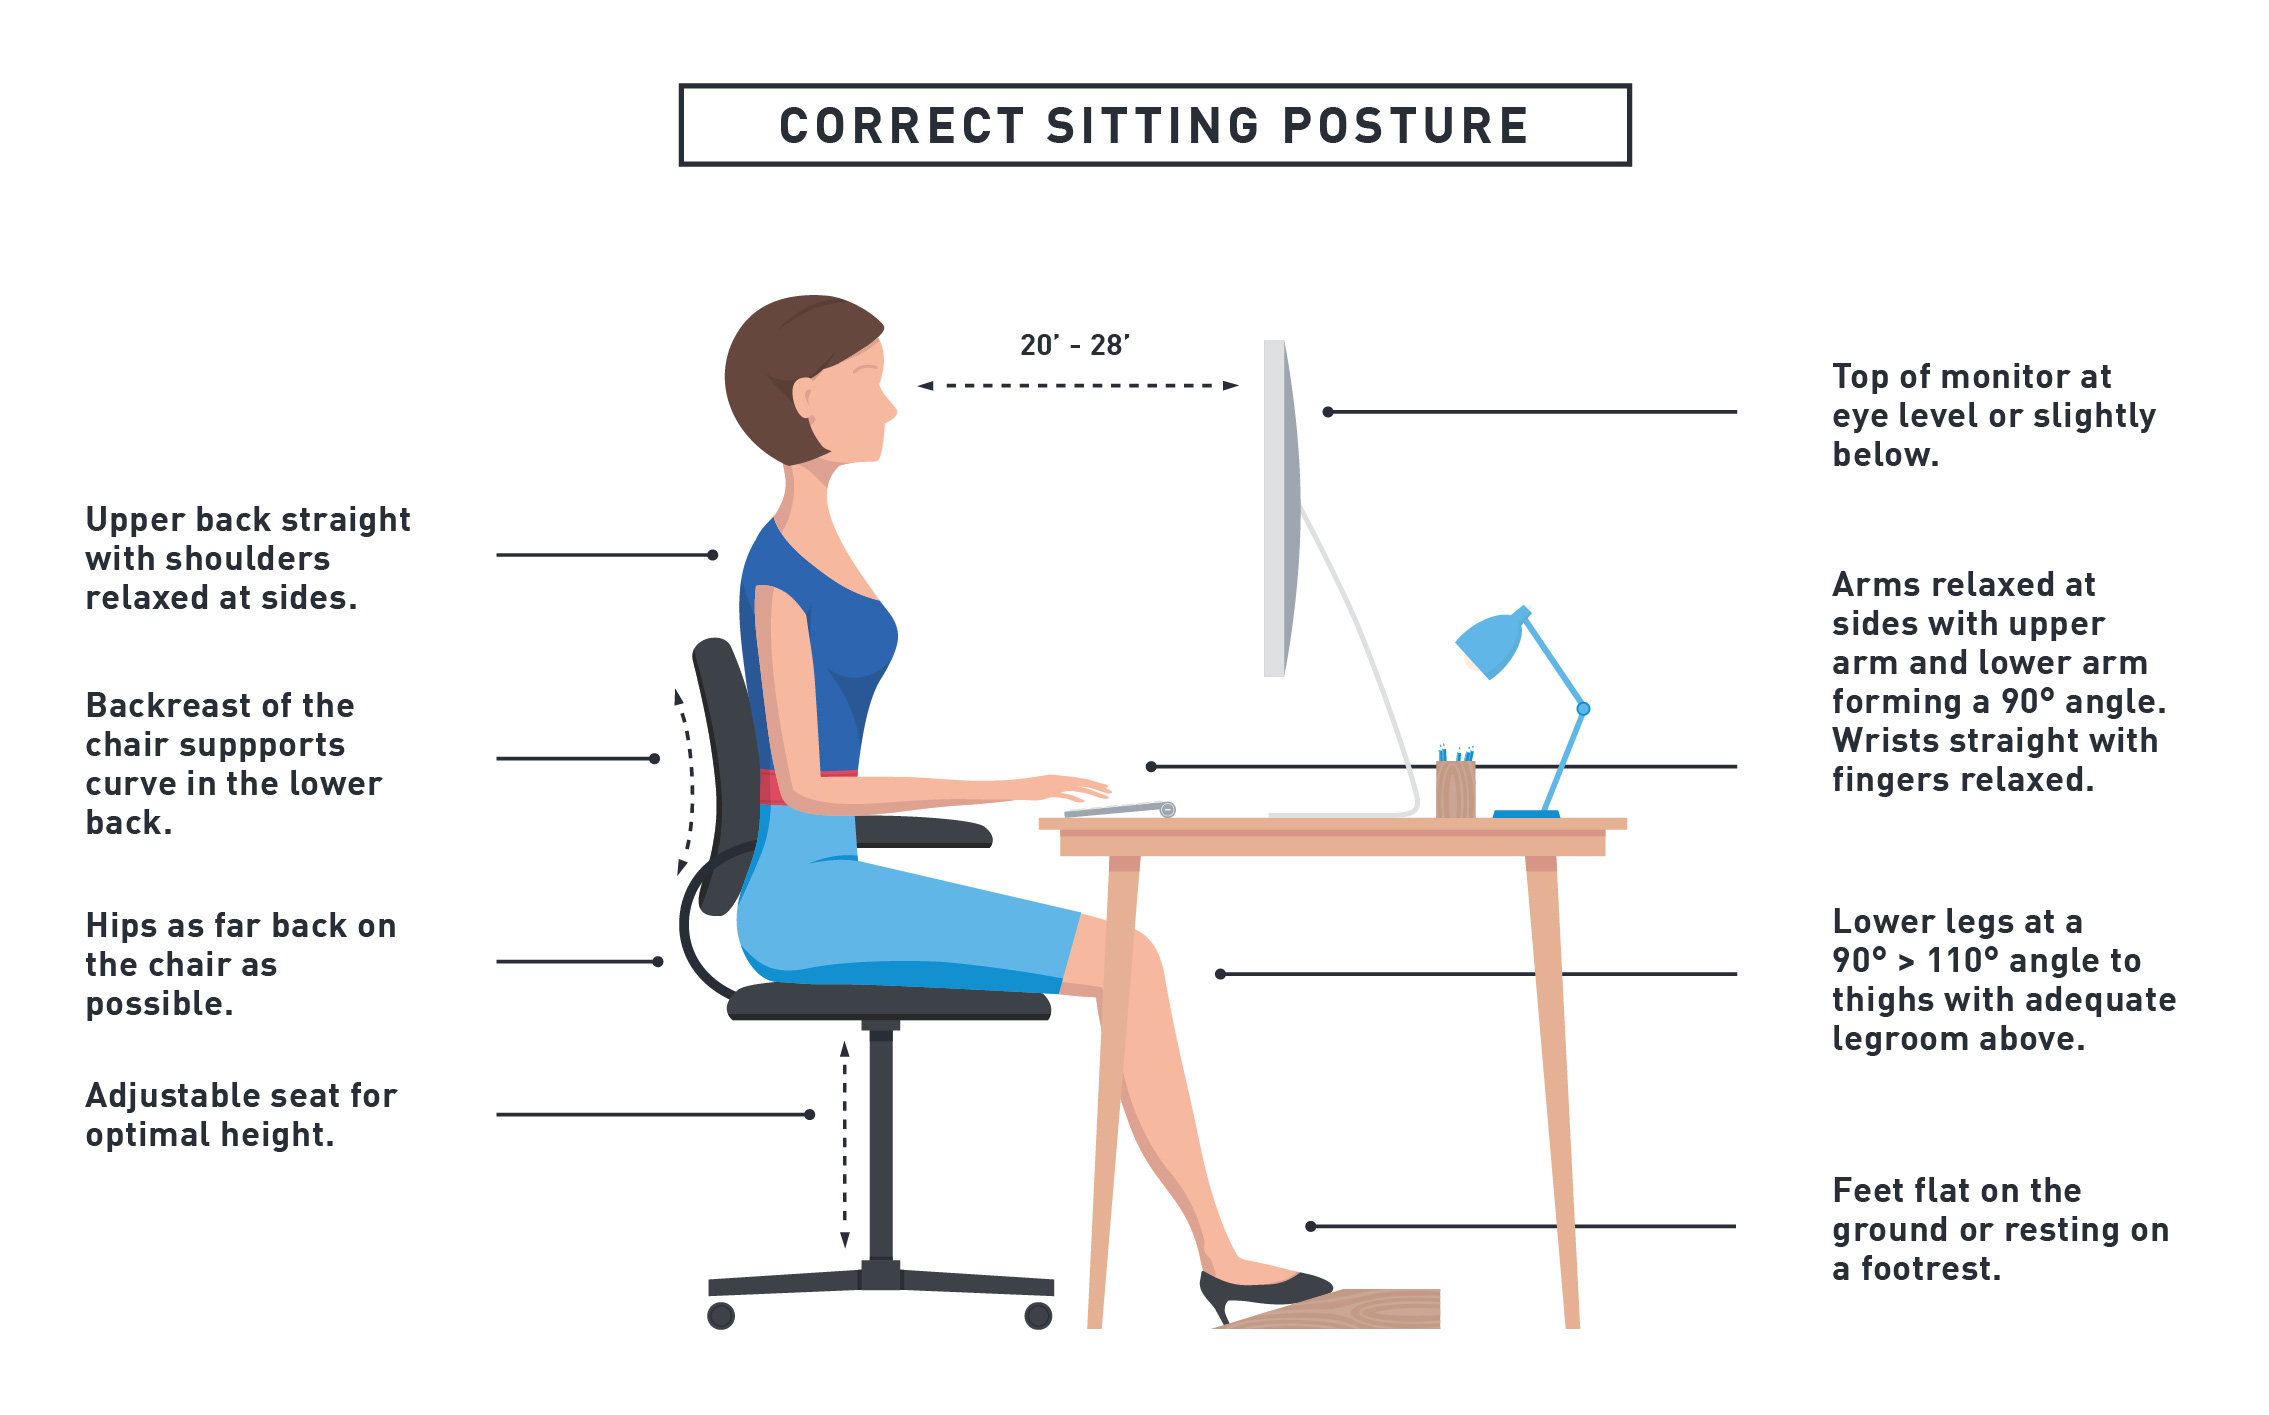 6 health risks of sitting at a desk all day